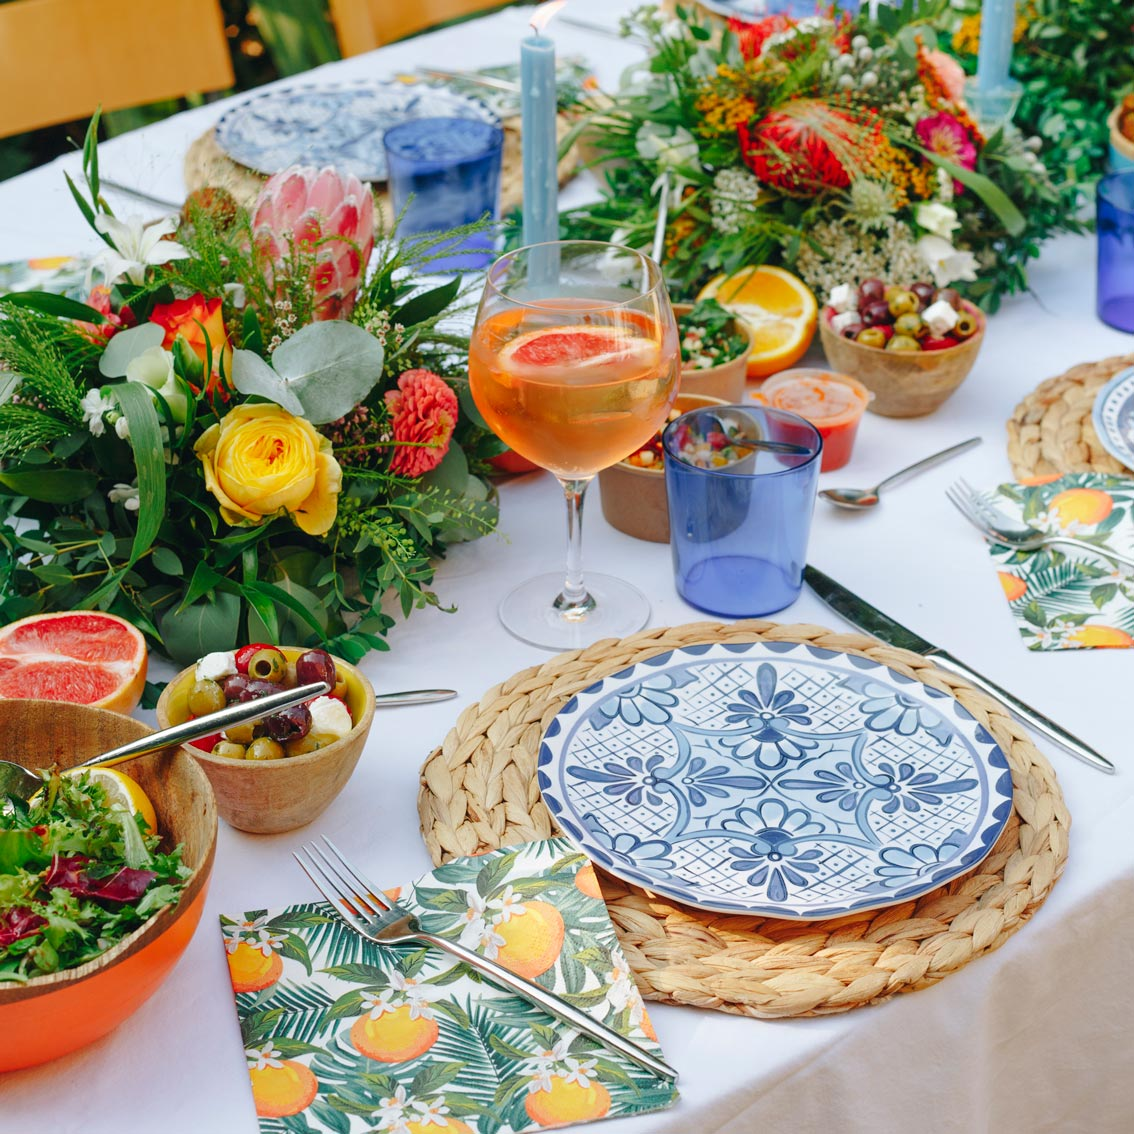 Sarah's Mediterranean Table with Blue and White Plates, Orange Botanical Paper Napkins and Beautiful Table Flowers Centrepiece - Talking Tables UK